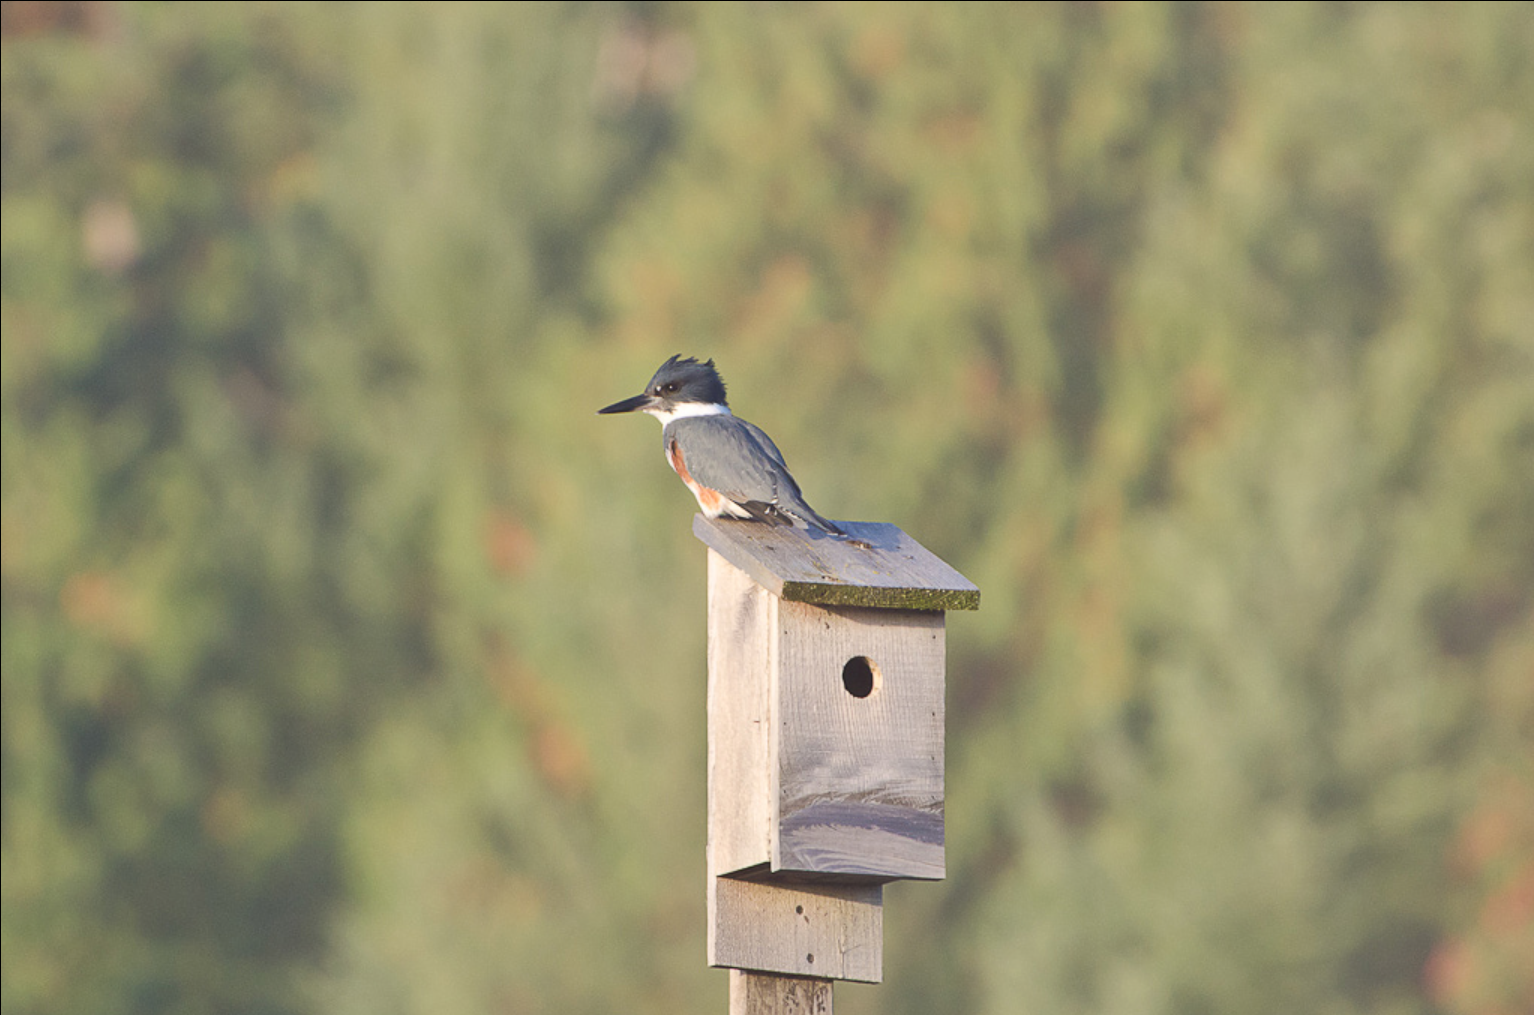 A blue and white bird sitting on a birdhouse roof with a background of trees.